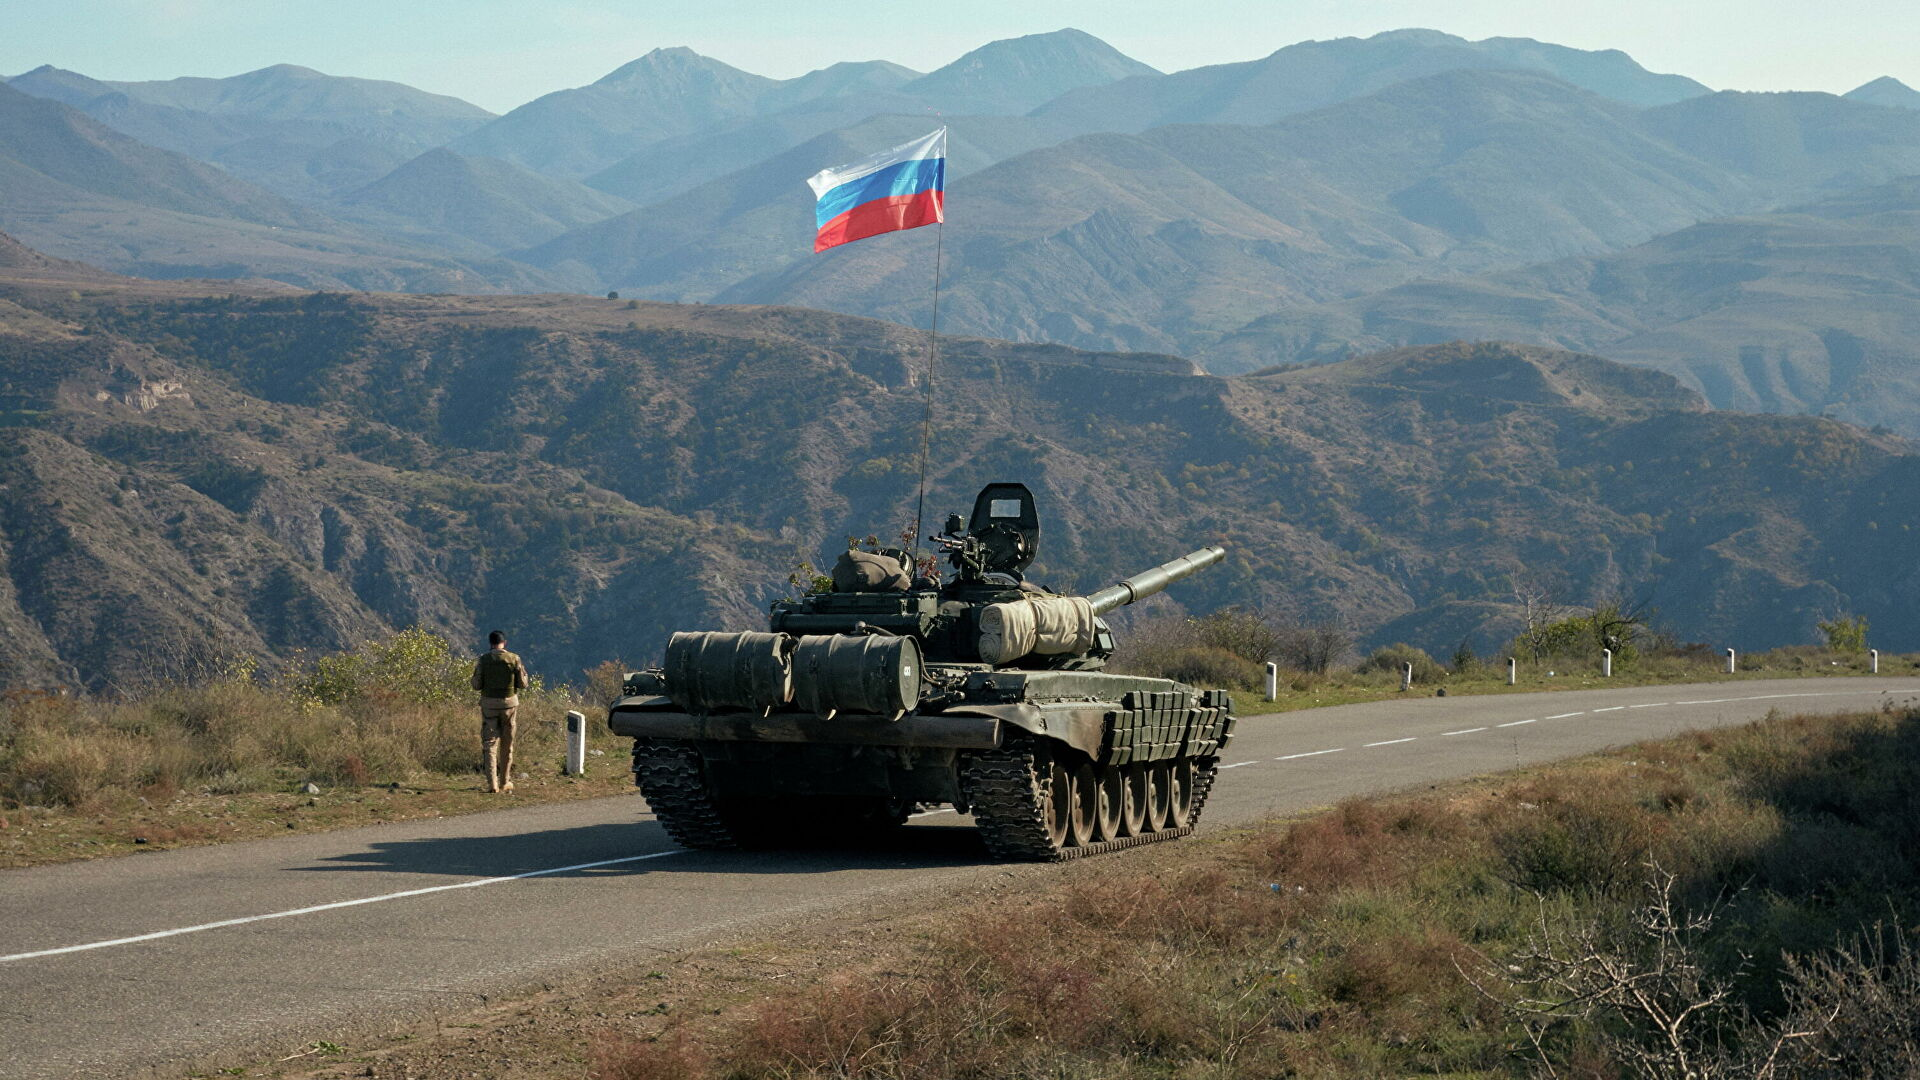 David Babayan, Nagorno-Karabakh, Artsakh, Russia, deployment of a Russian military base, trilateral agreement on the cessation of hostilities,